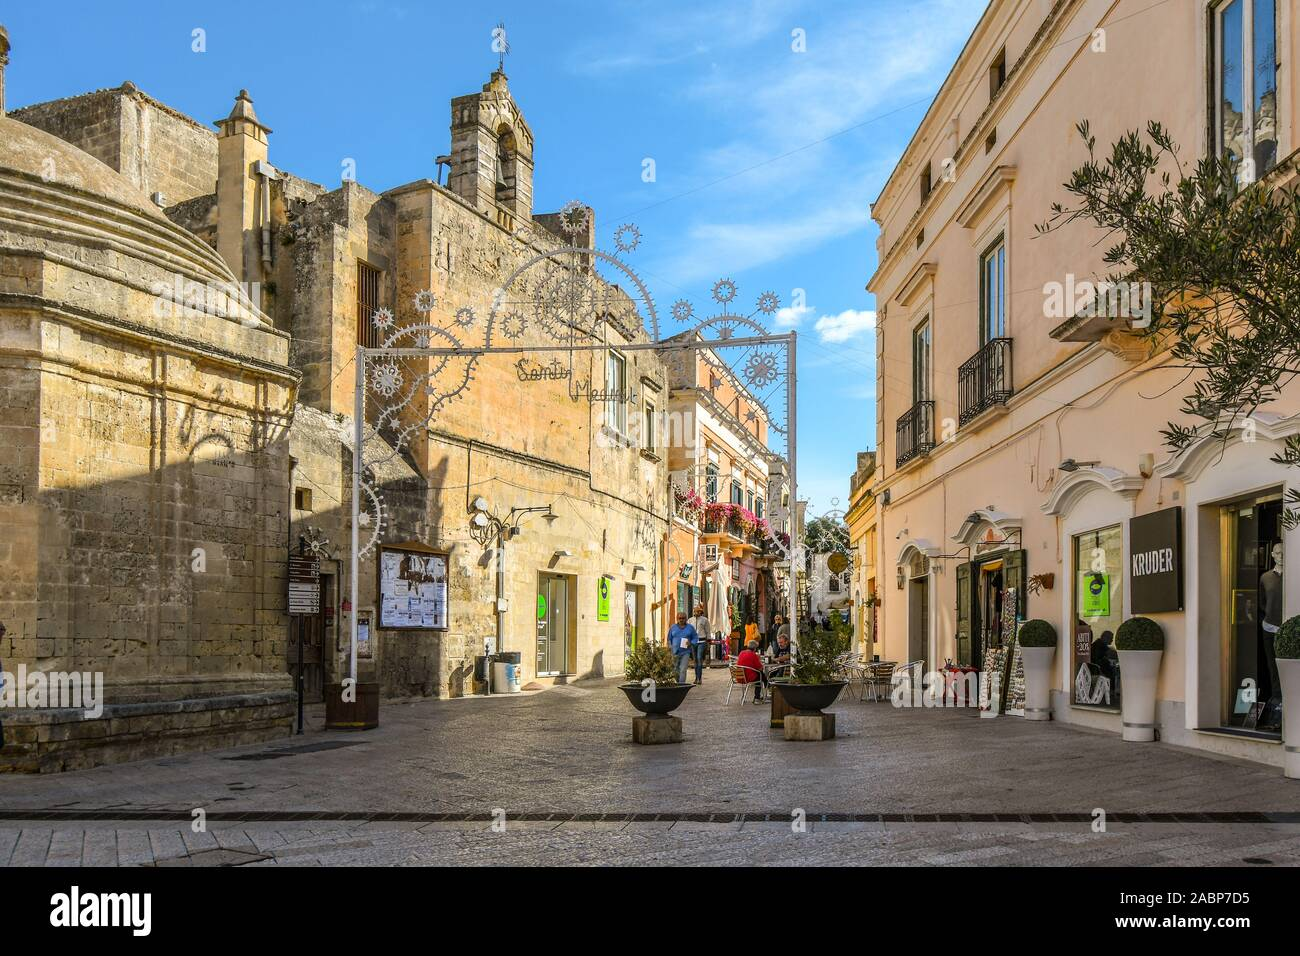 Street decorations adorn Via San Biagio in the town of Matera, Italy as it prepares for the September Santi Medici procession through the ancient city Stock Photo